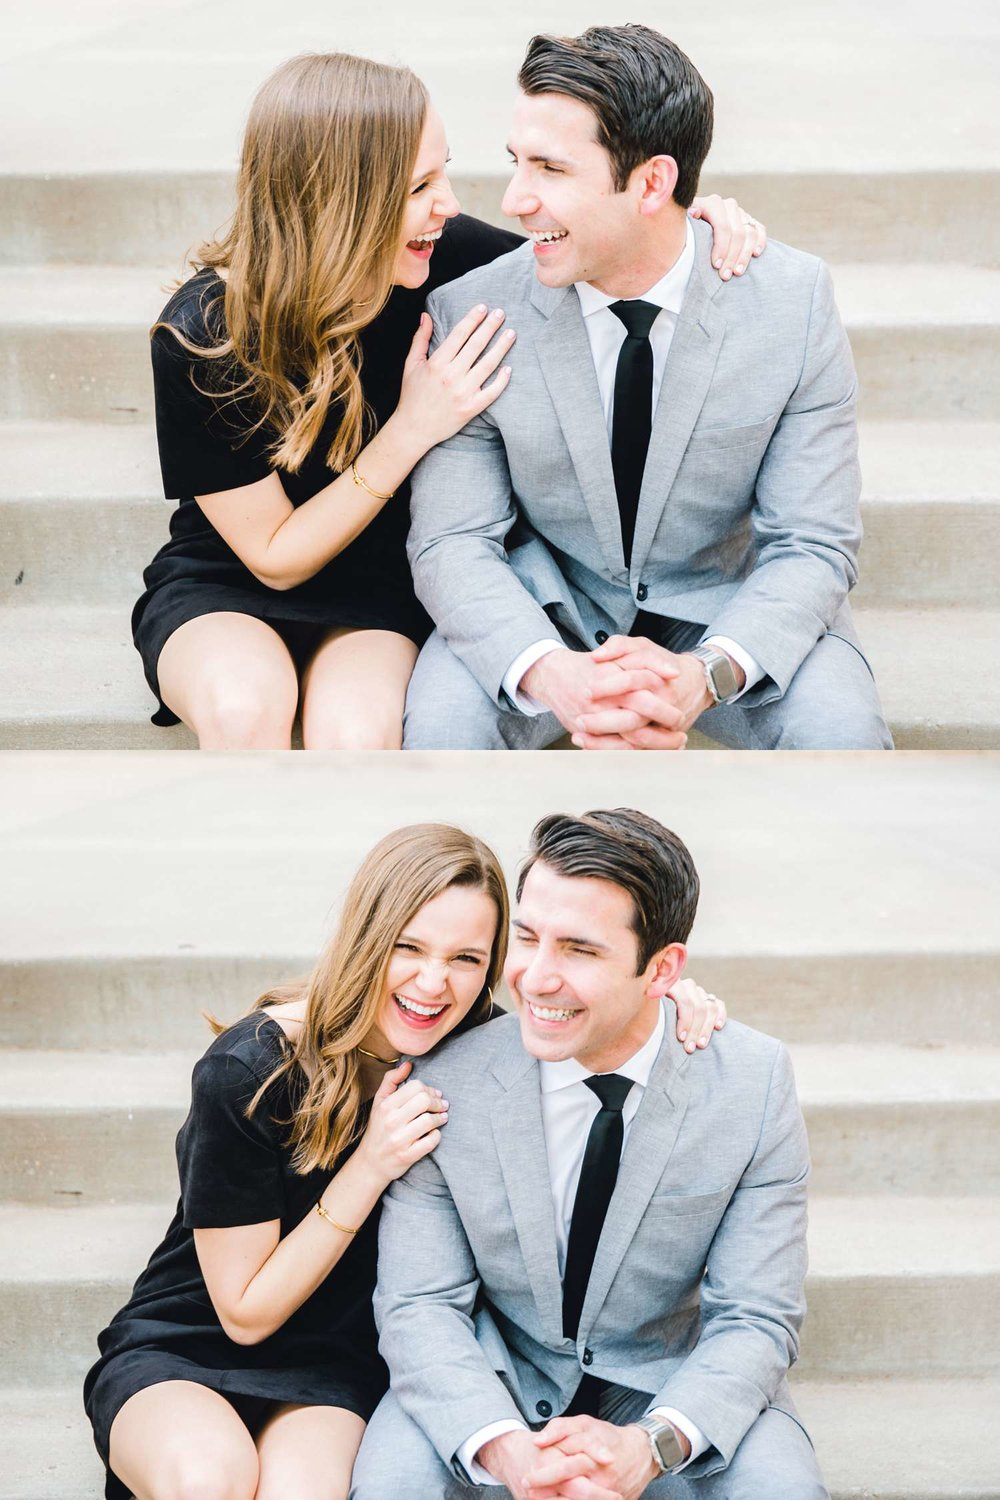 CAROLINE+CHRISTIAN+ALLEEJ+ENGAGEMENTS+LUBBOCK+WEDDING+PHOTOGRAPHER+FIRST+BAPTIST+CHURCH_0030.jpg